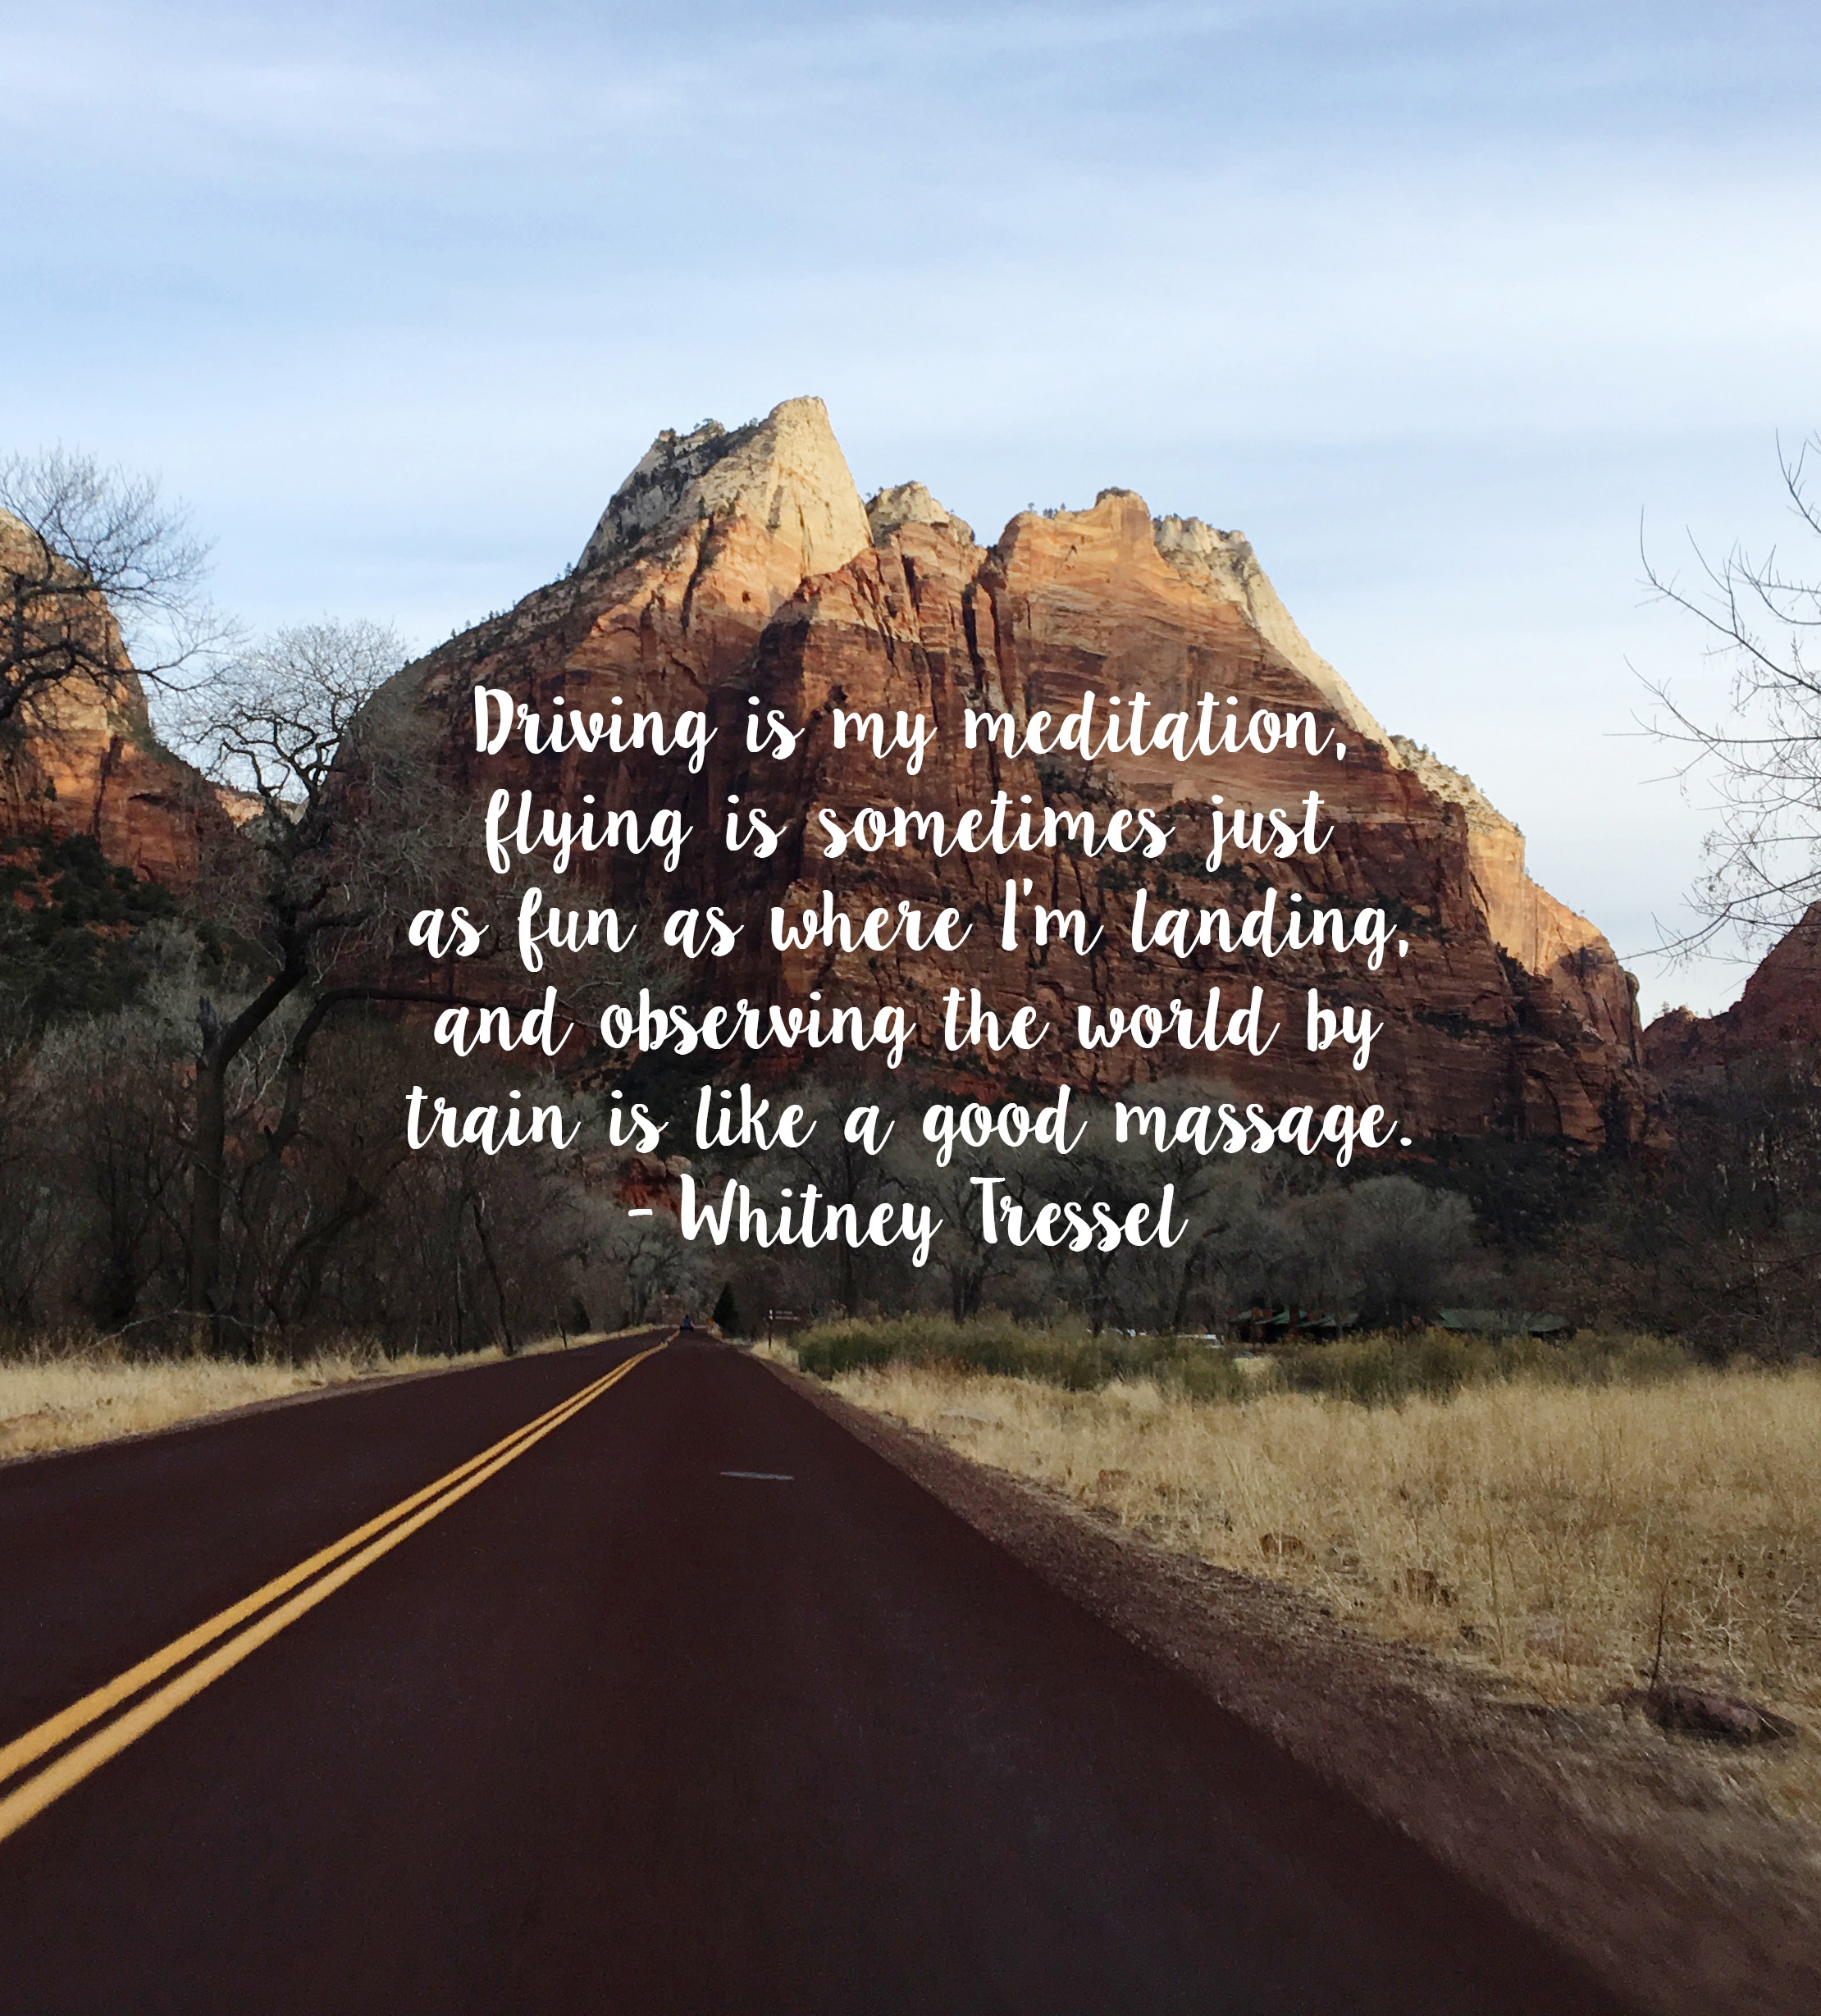 Driving is my meditation, flying is sometimes just as fun as where I'm landing, and observing the world by train is like I good massage. - Whitney Tressel